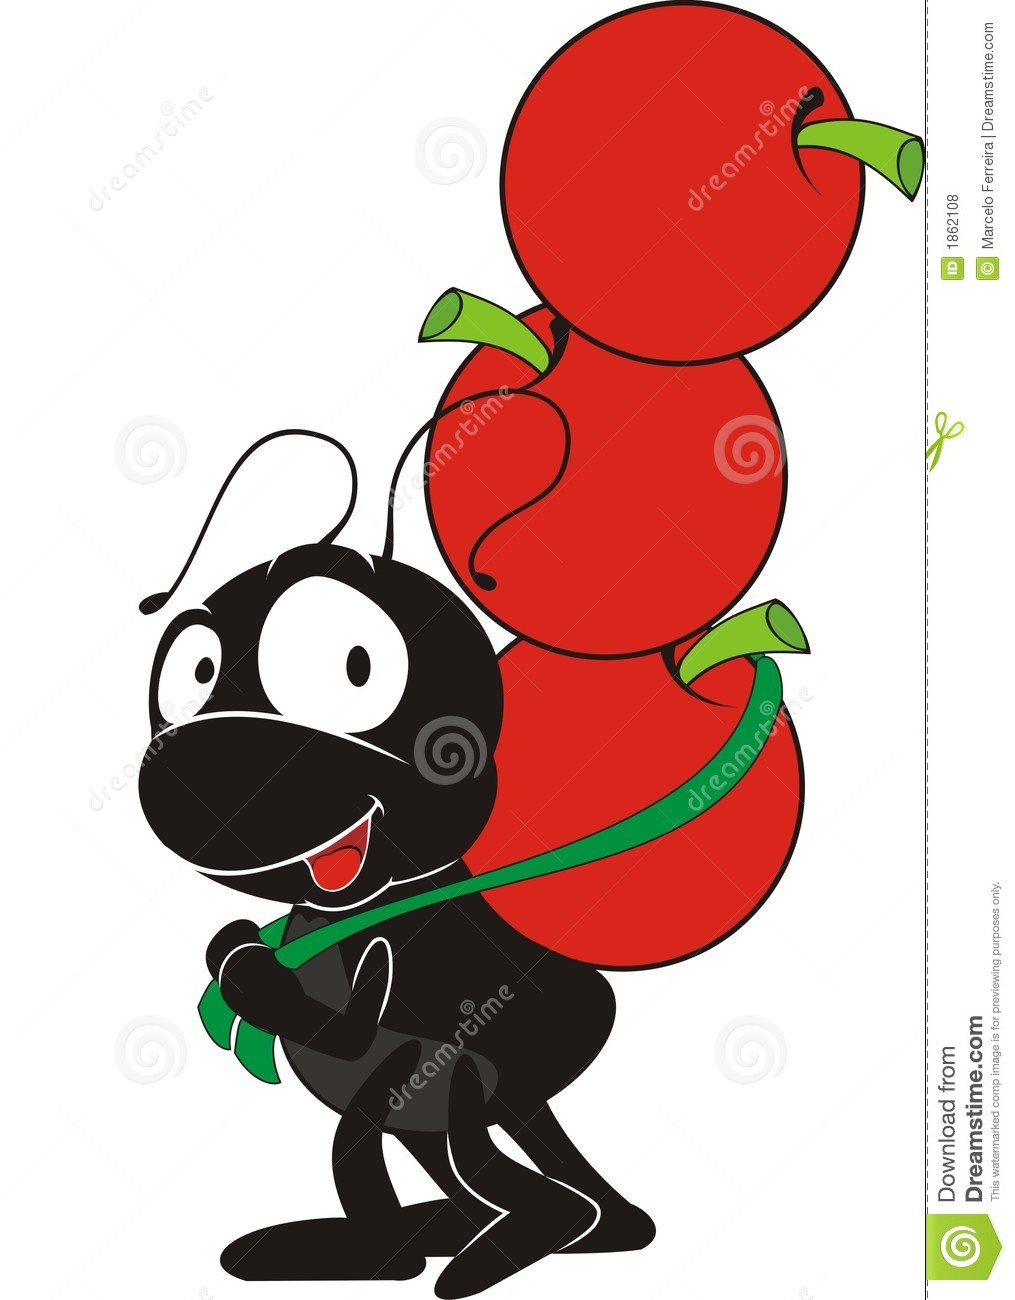 1015x1300 Collection Of Ants Working Together Clipart High Quality